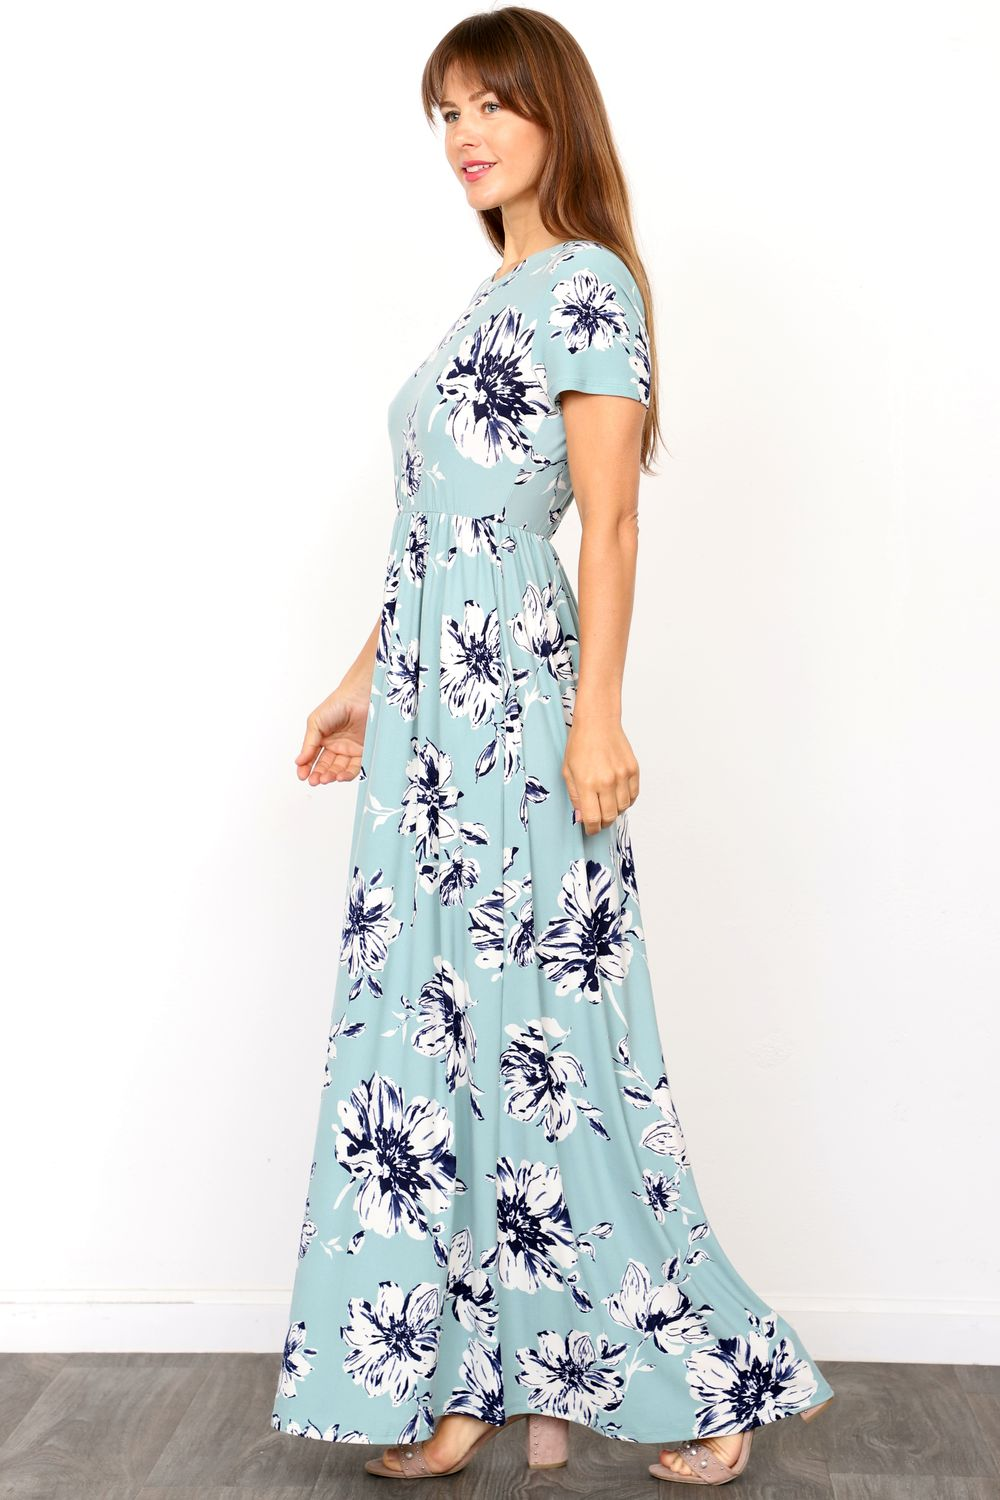 Mint Spring Short Sleeve Maxi Dress